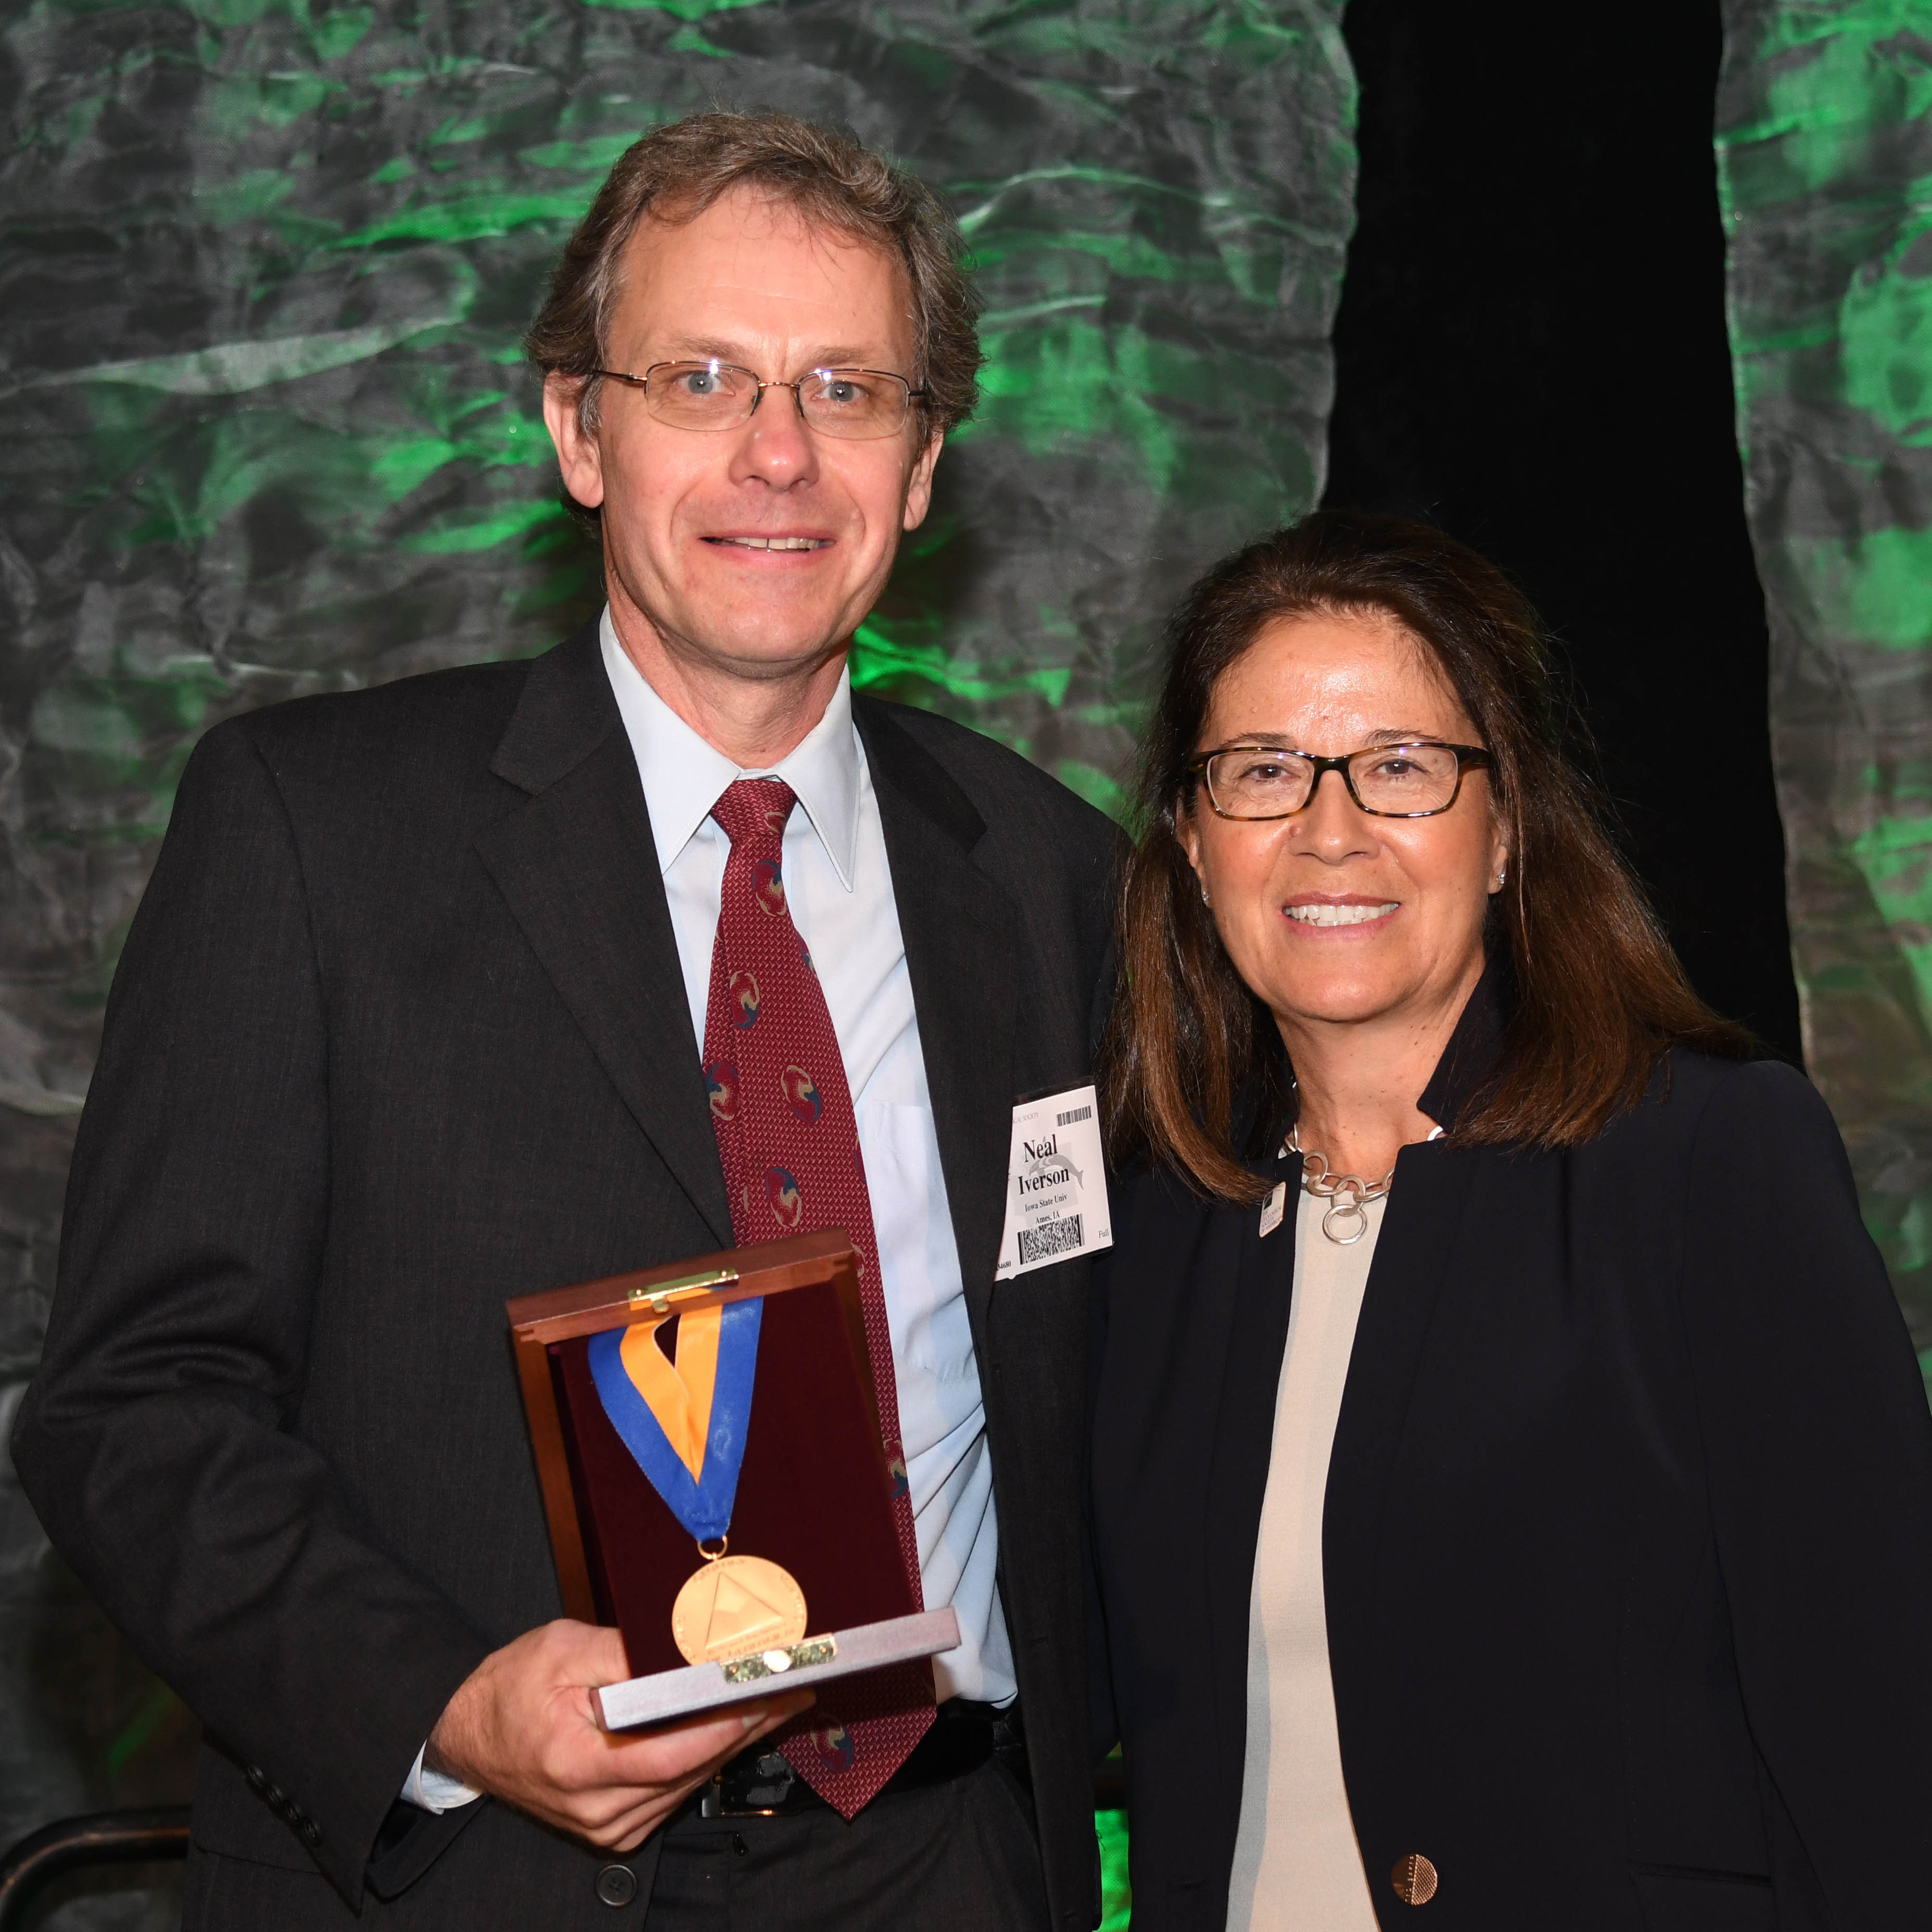 Neal Iverson with GSA president Isabel Montañez at the 2017 Annual GSA Meeting